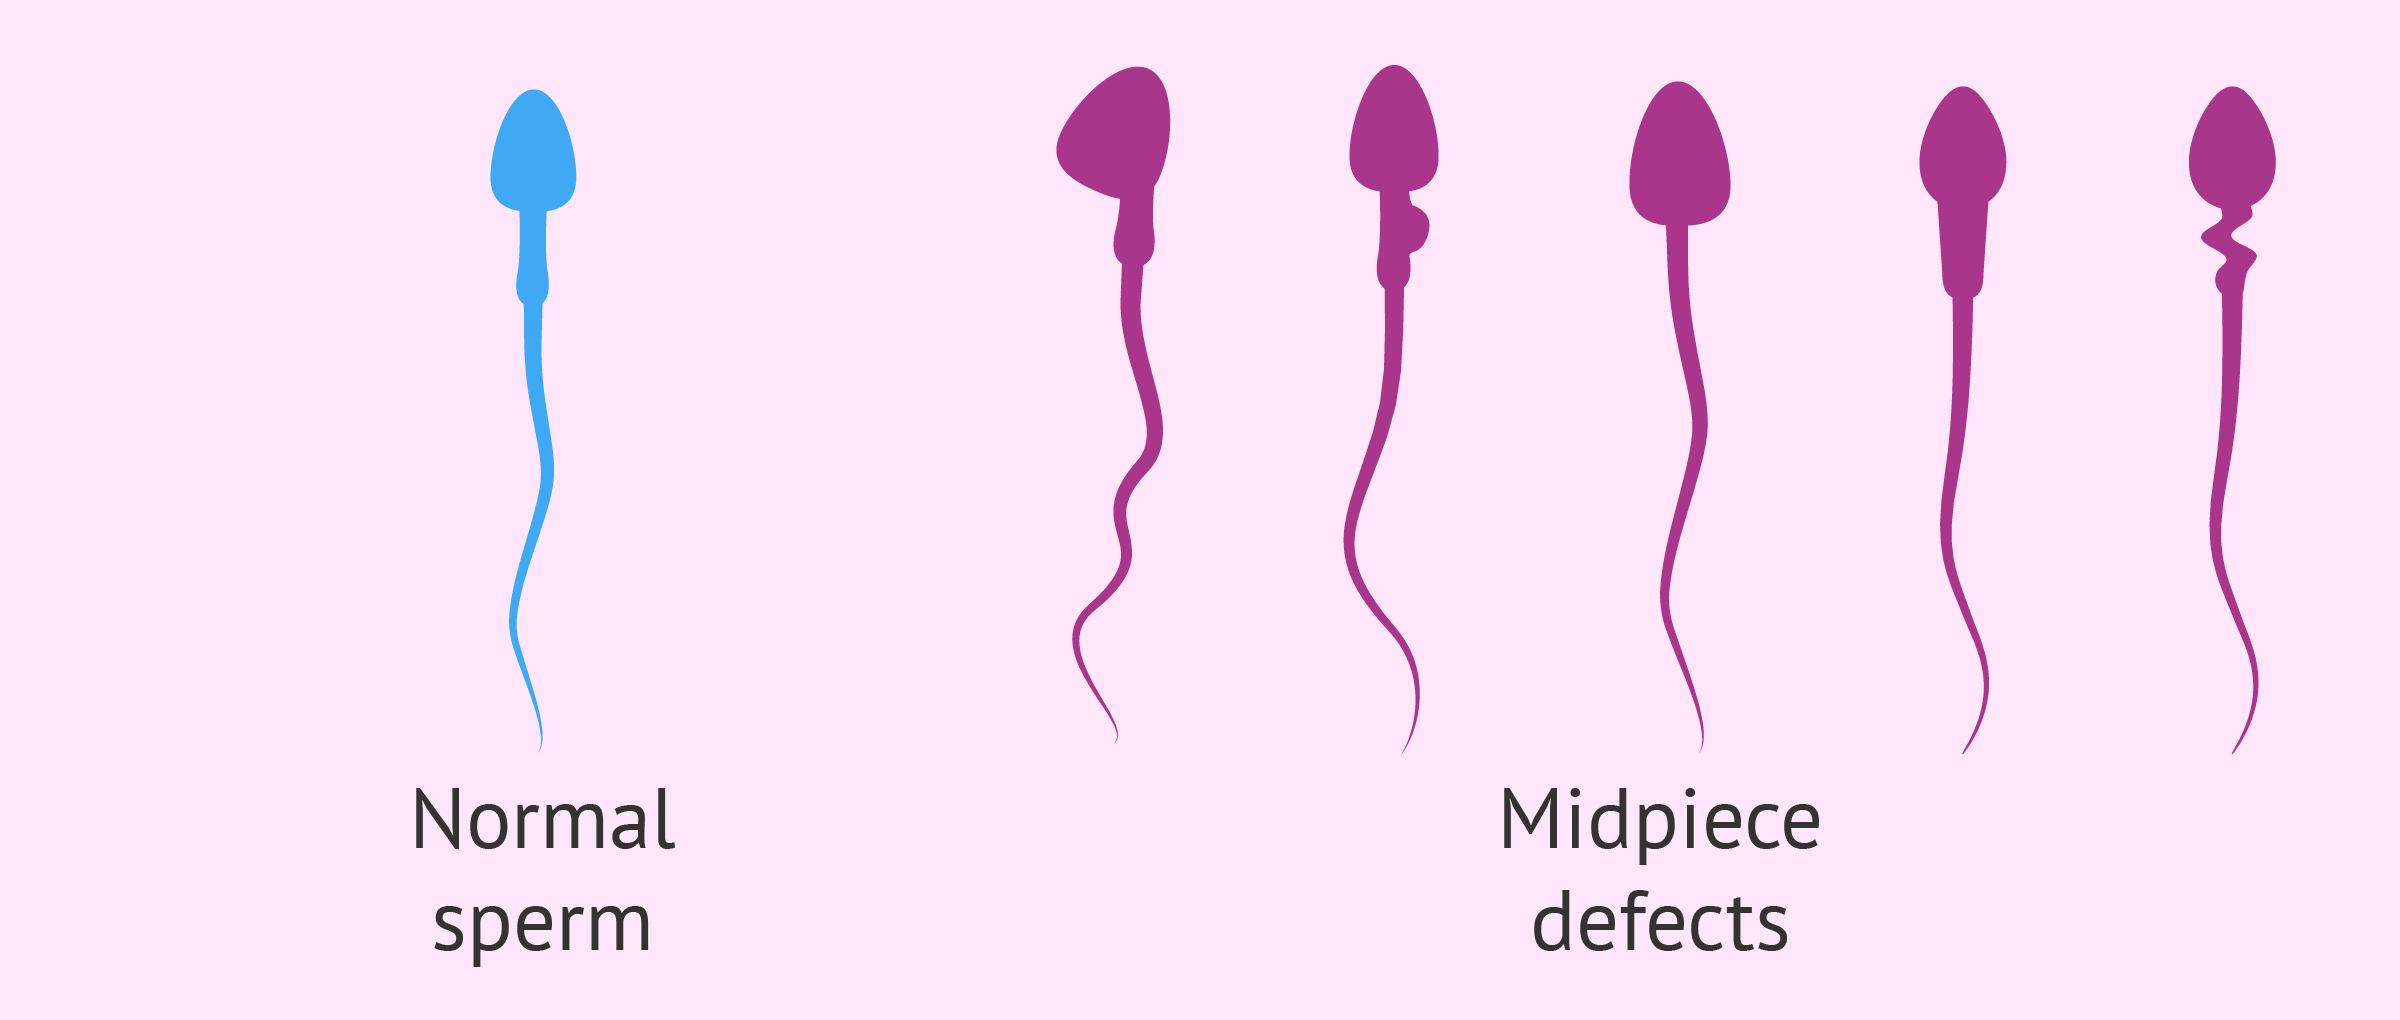 Midpiece defects in sperm